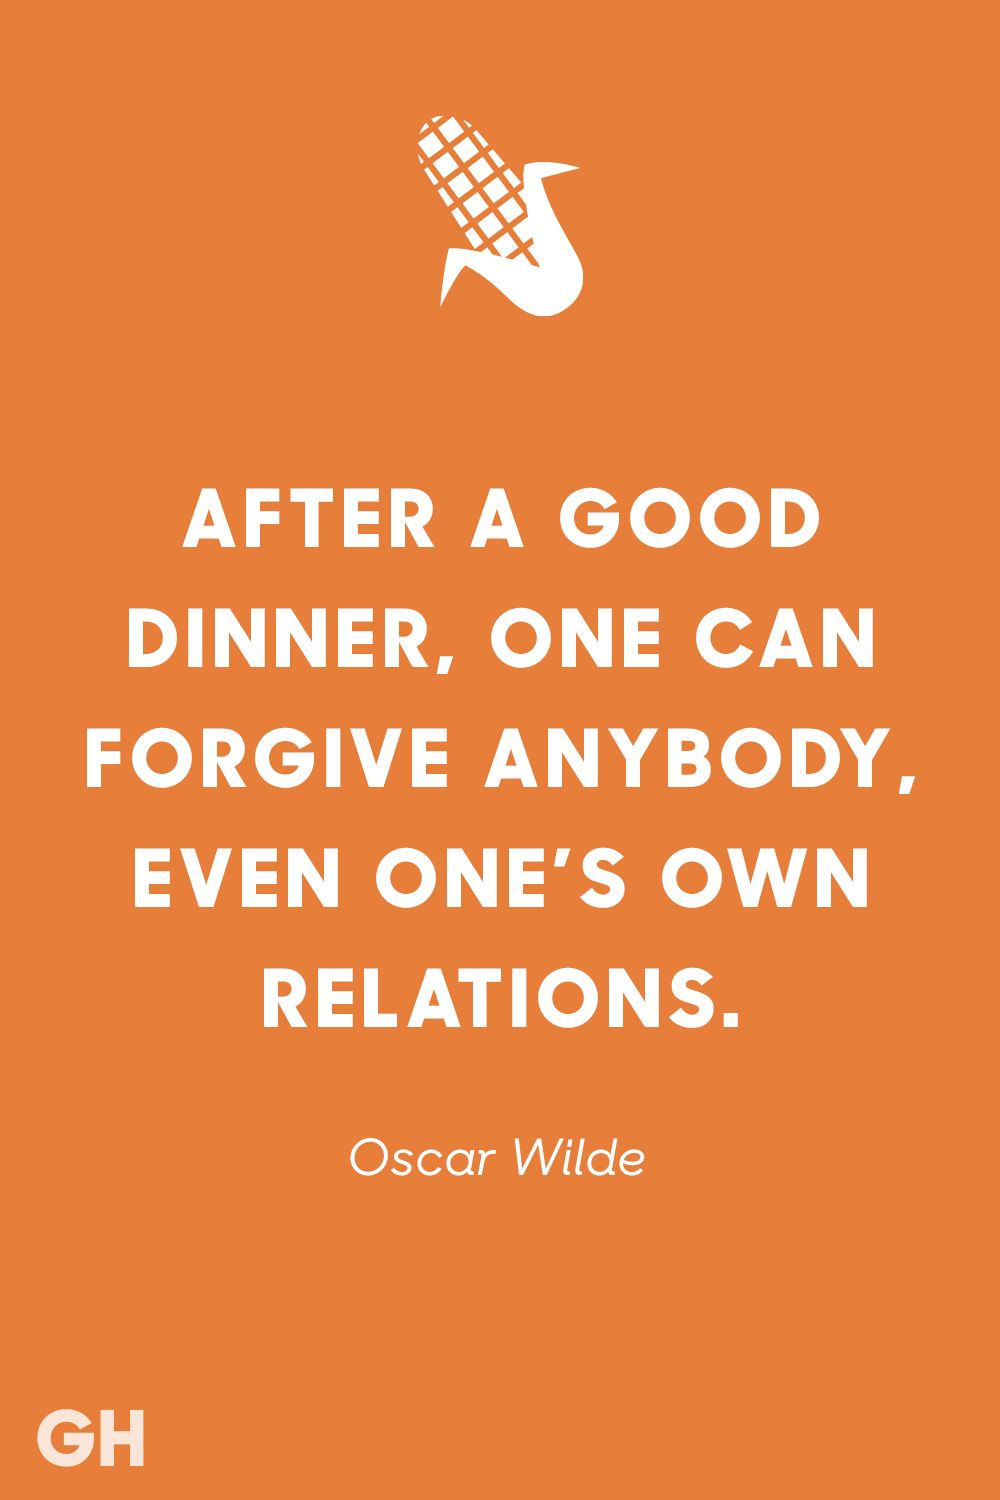 oscar wilde thanksgiving quote